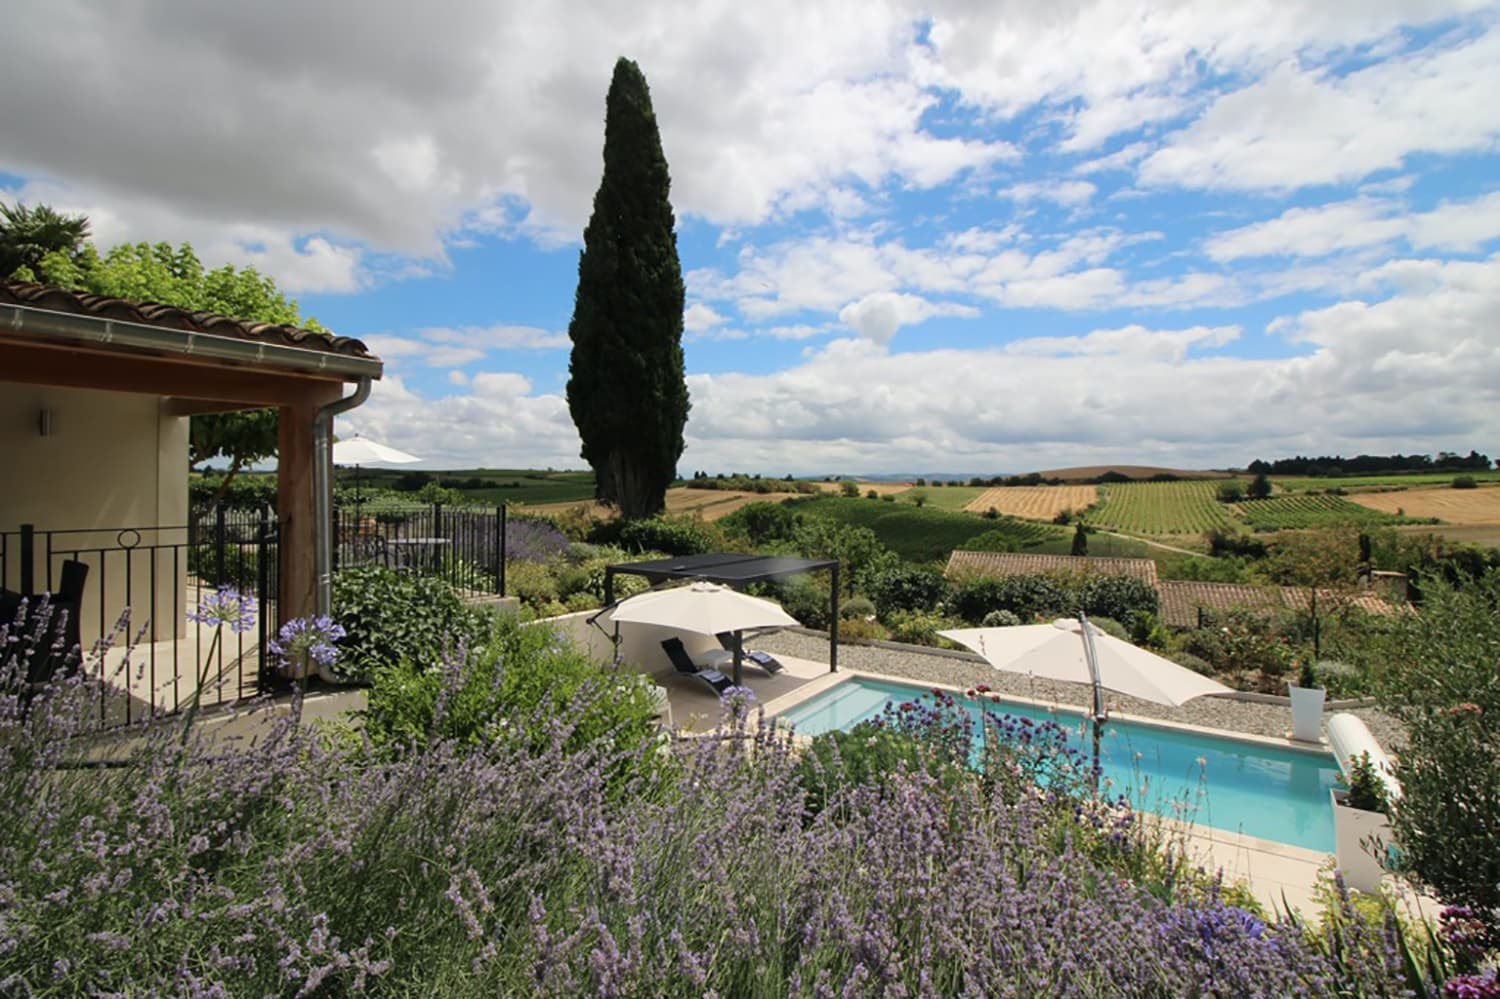 Holiday home in Montréal, Occitanie with private pool